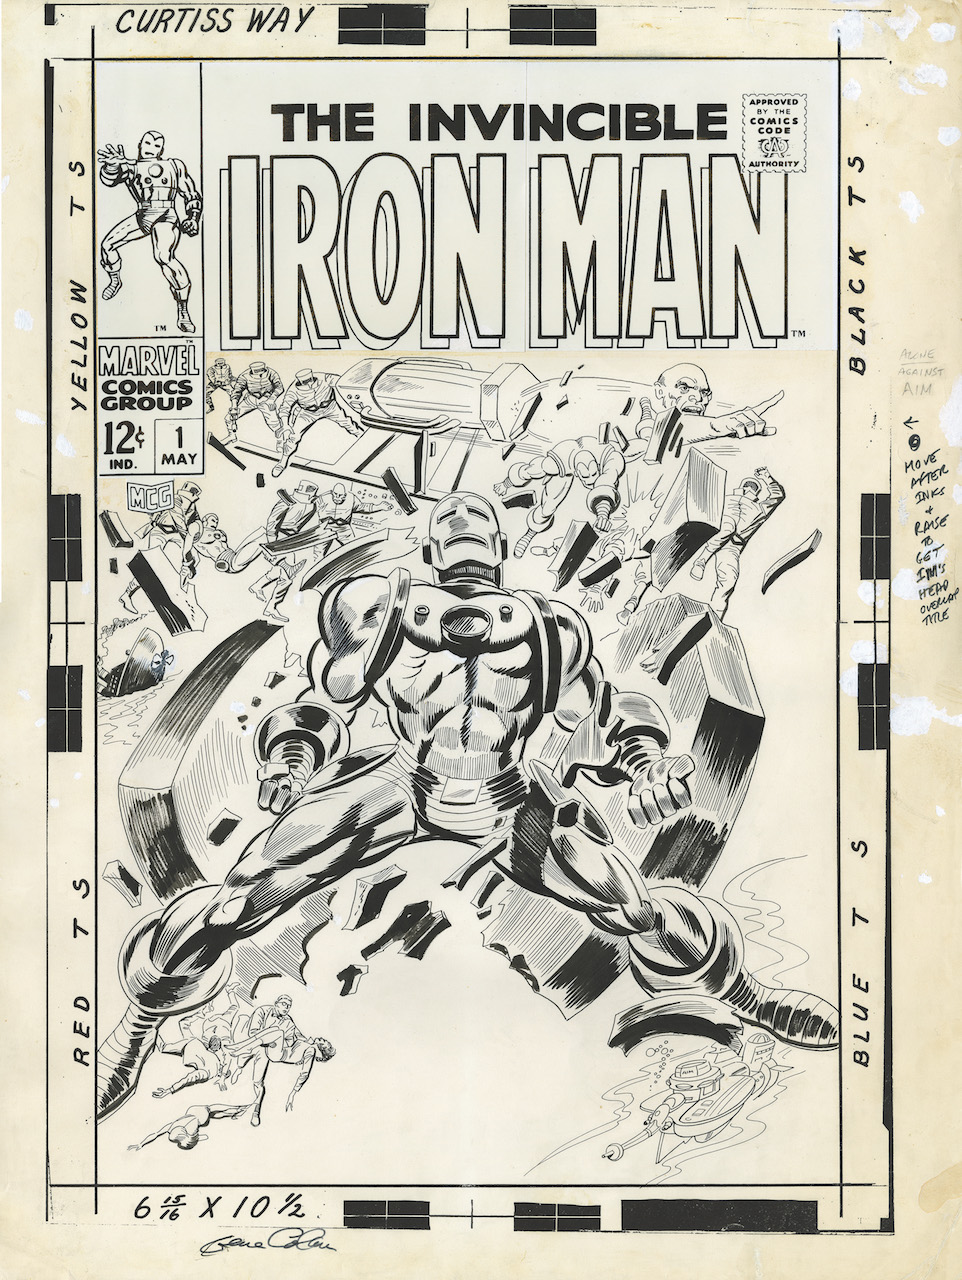 Gene Colan and Johnny Craig, Original cover art for 'Iron Man' (no. 1, May 1968) (collection of David Mandel)